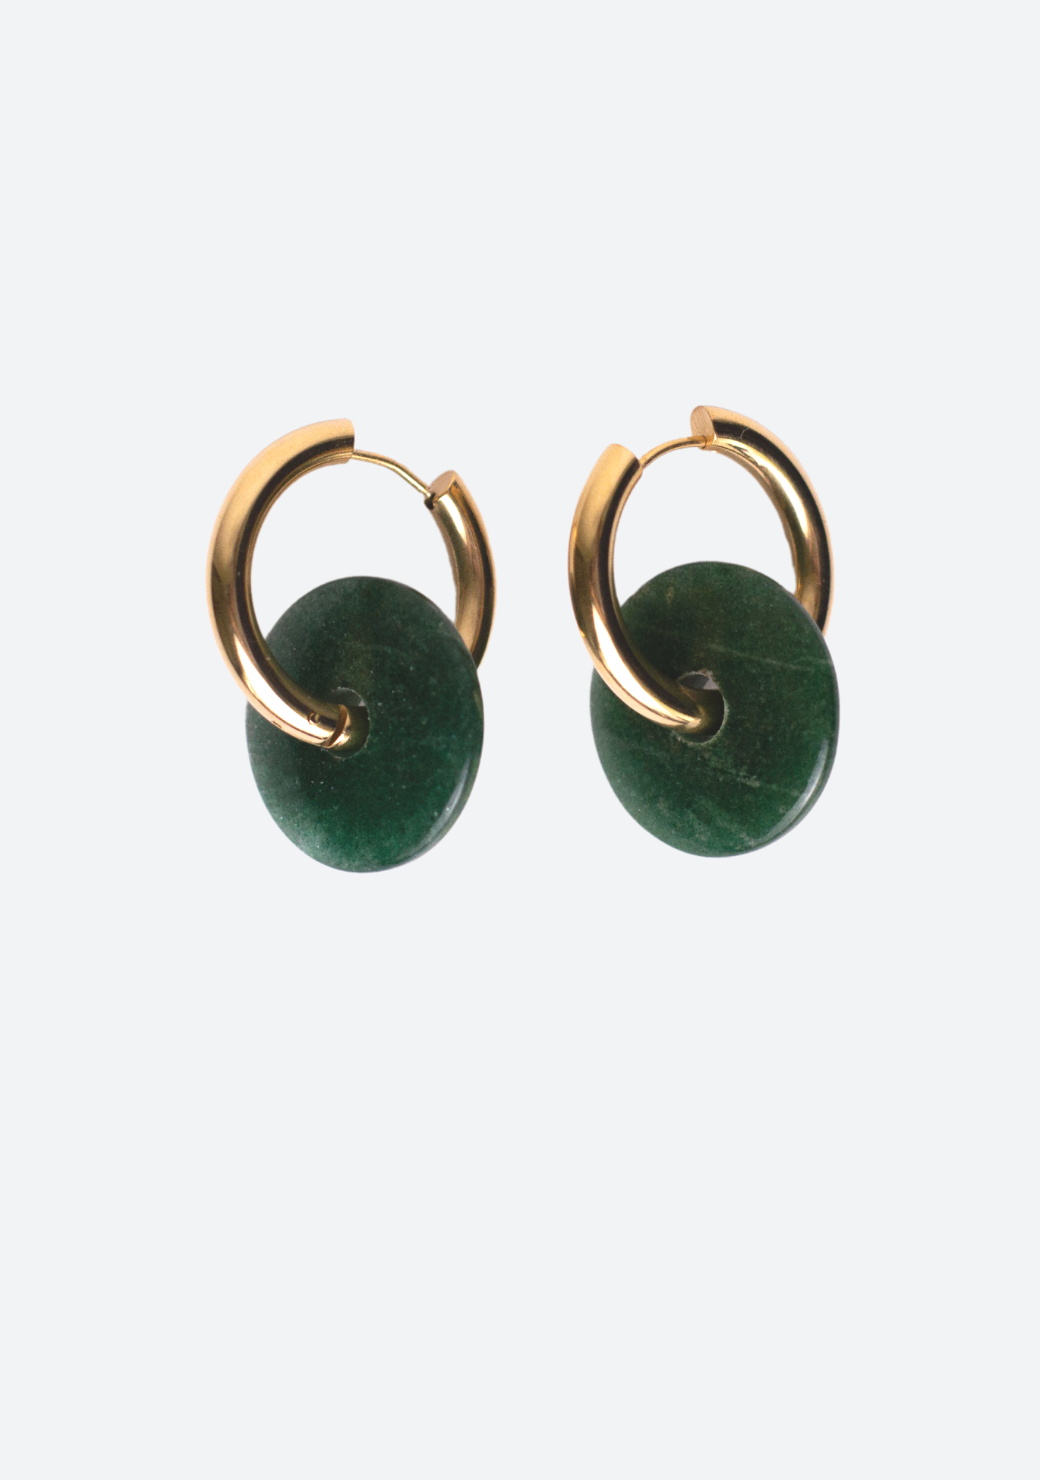 Big Yara Earring in Natural Green Jade